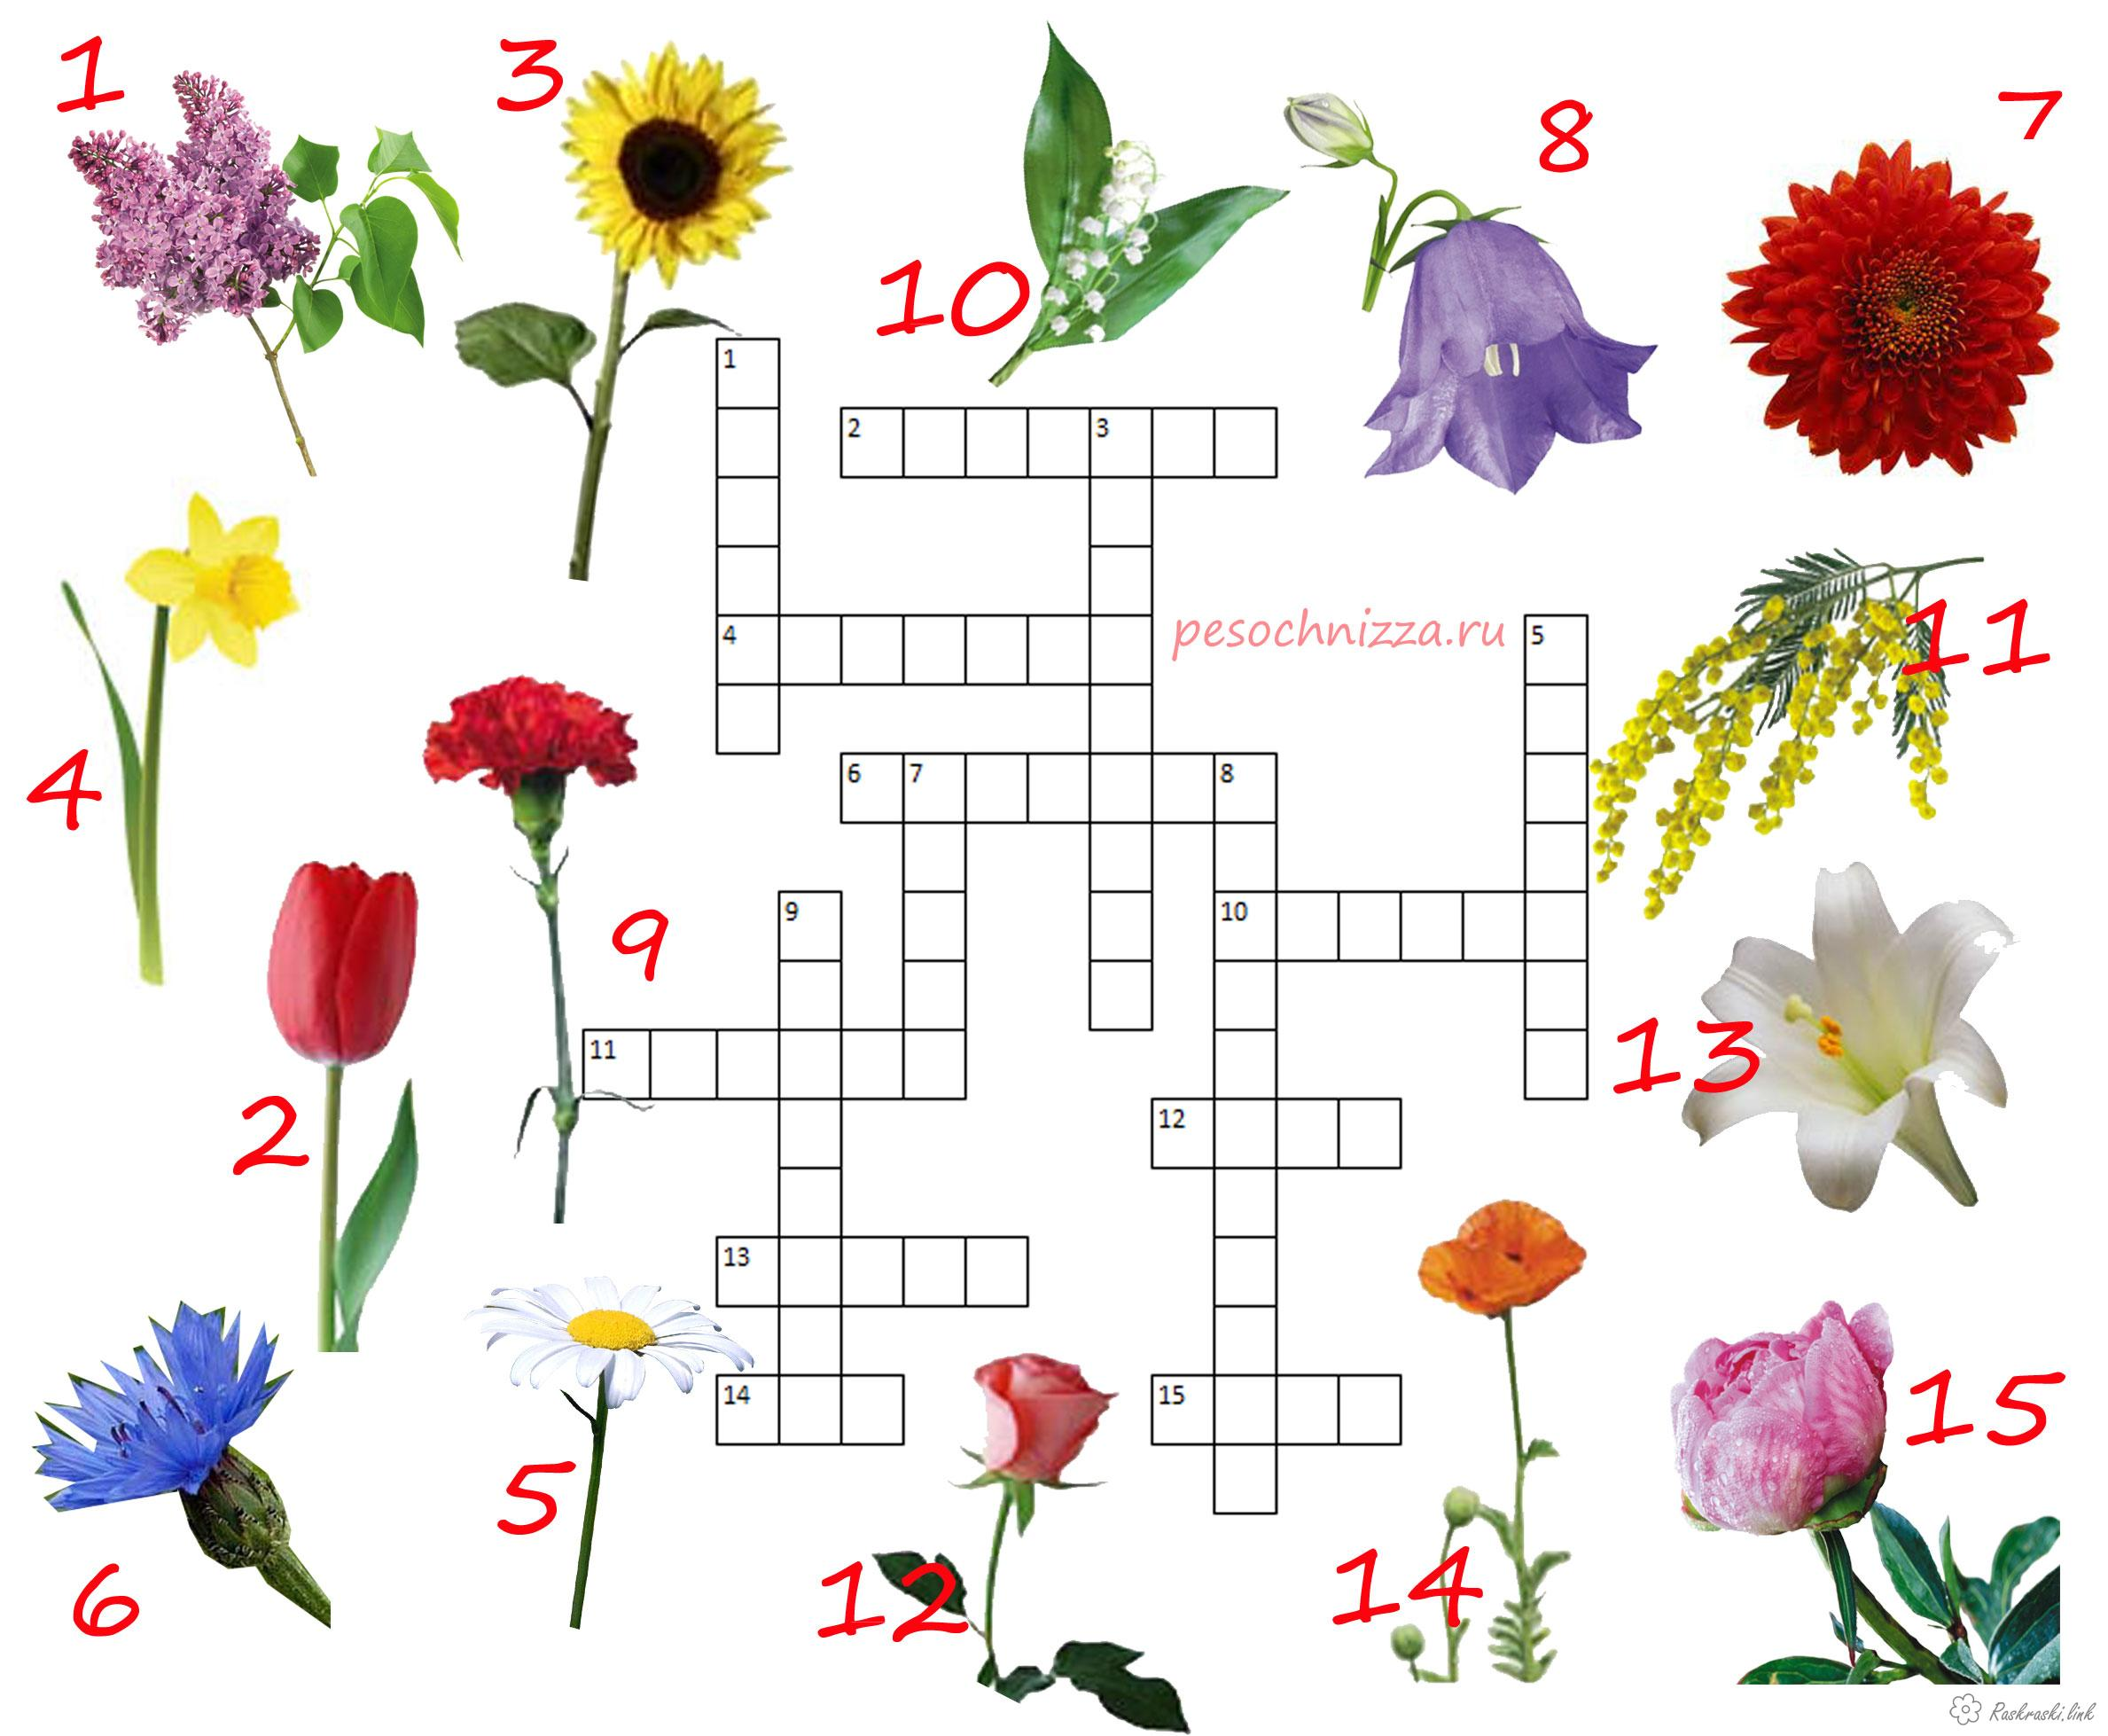 Coloring Educational Crosswords for children, download, print, free, free